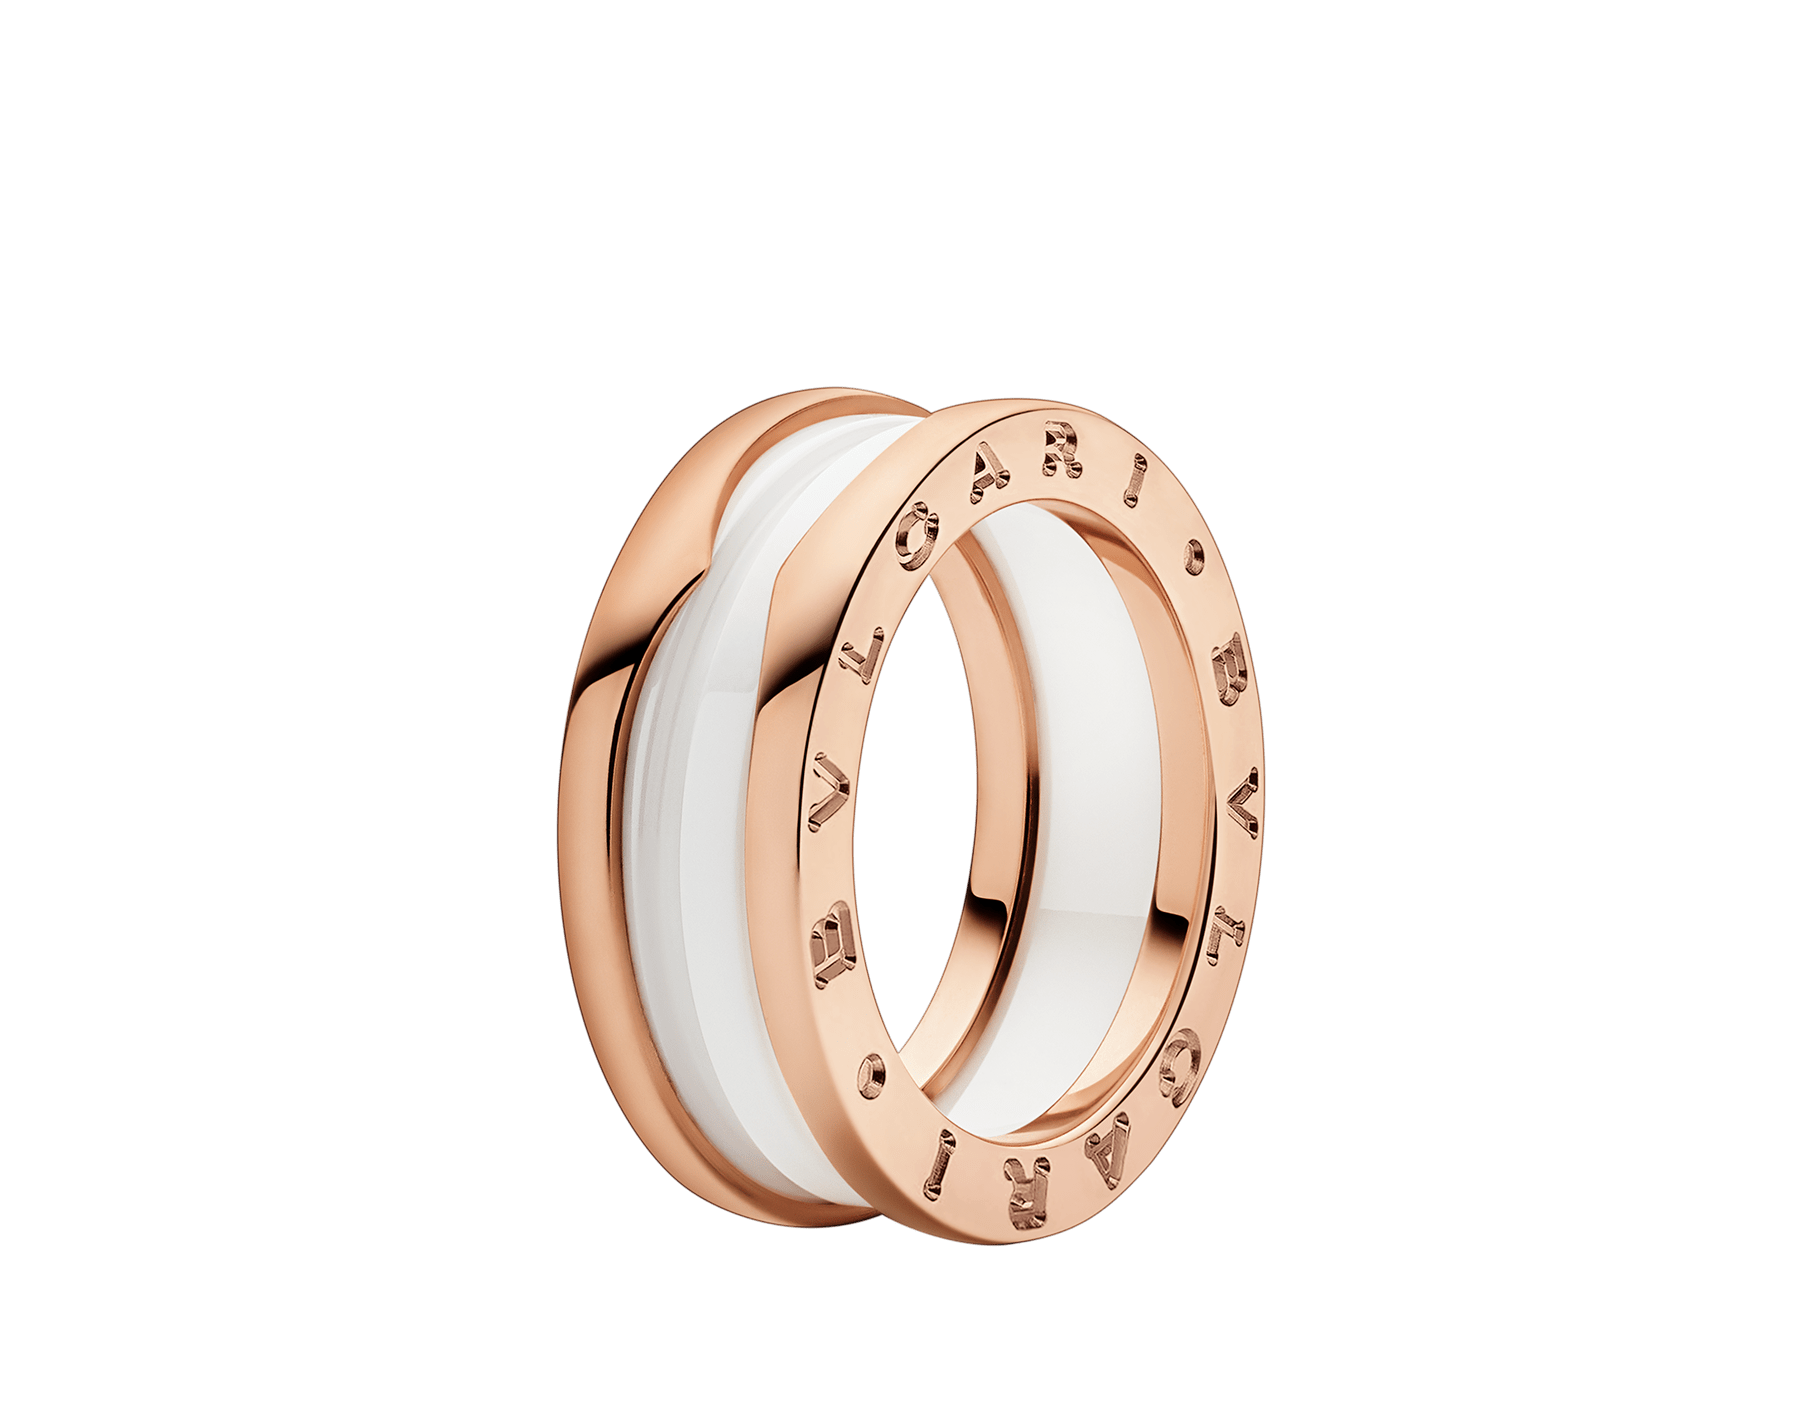 B.zero1 two-band ring with two 18 kt rose gold loops and a white ceramic spiral. B-zero1-2-bands-AN855964 image 1